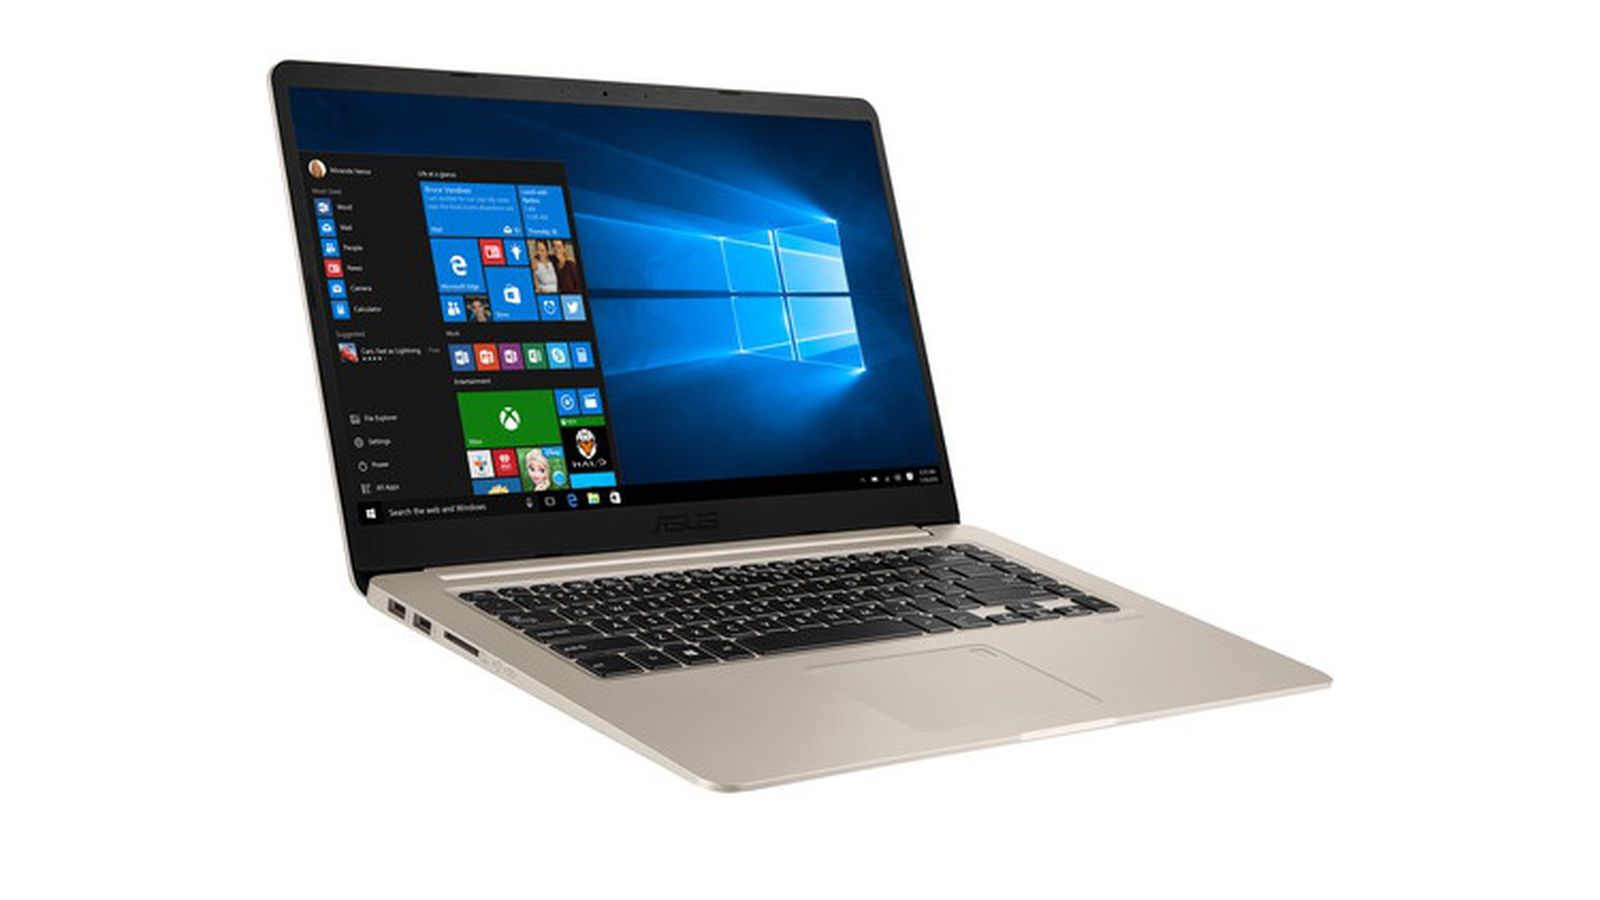 Asus new Vivobook S has slim bezels a 7th-generation processor and only costs 700